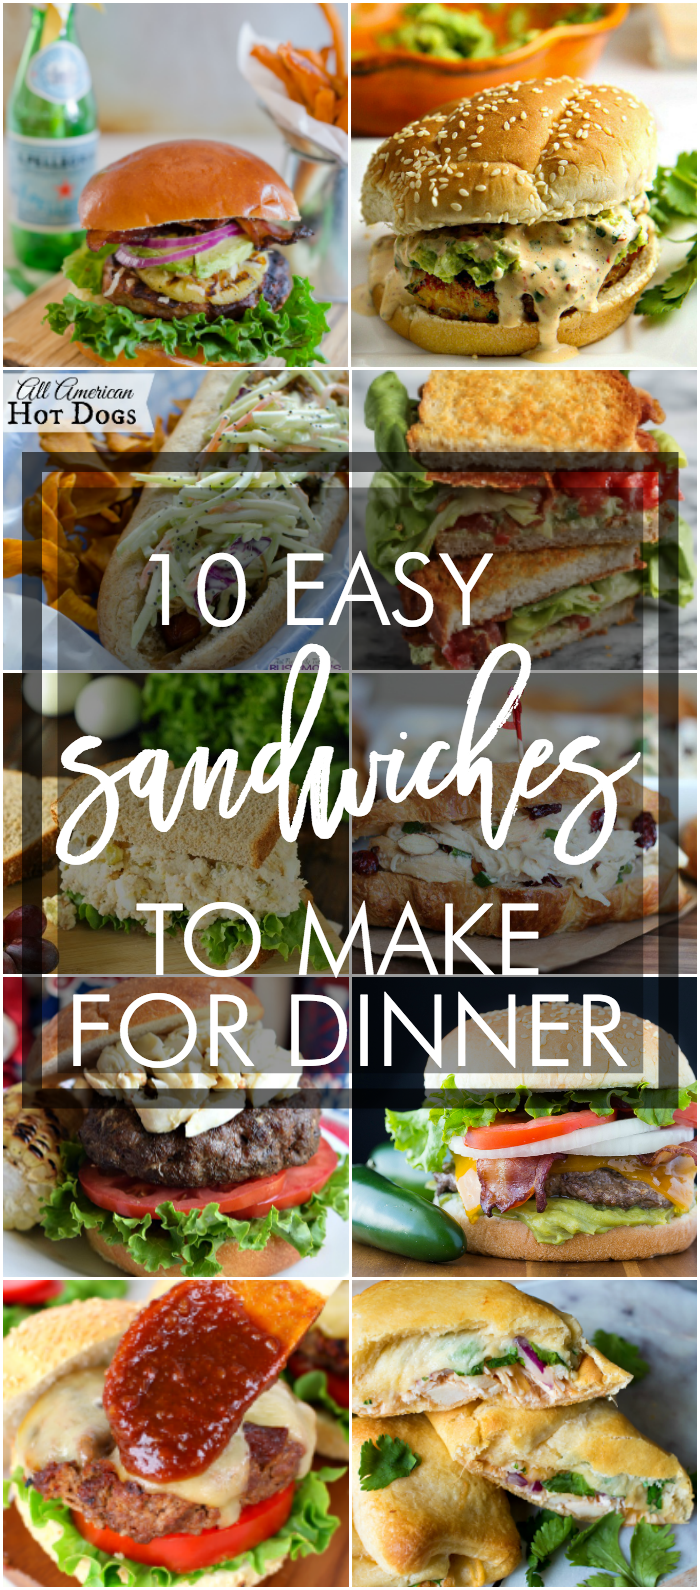 10 easy sandwich recipes to make for dinner. Simple sandwich ideas. Love these!